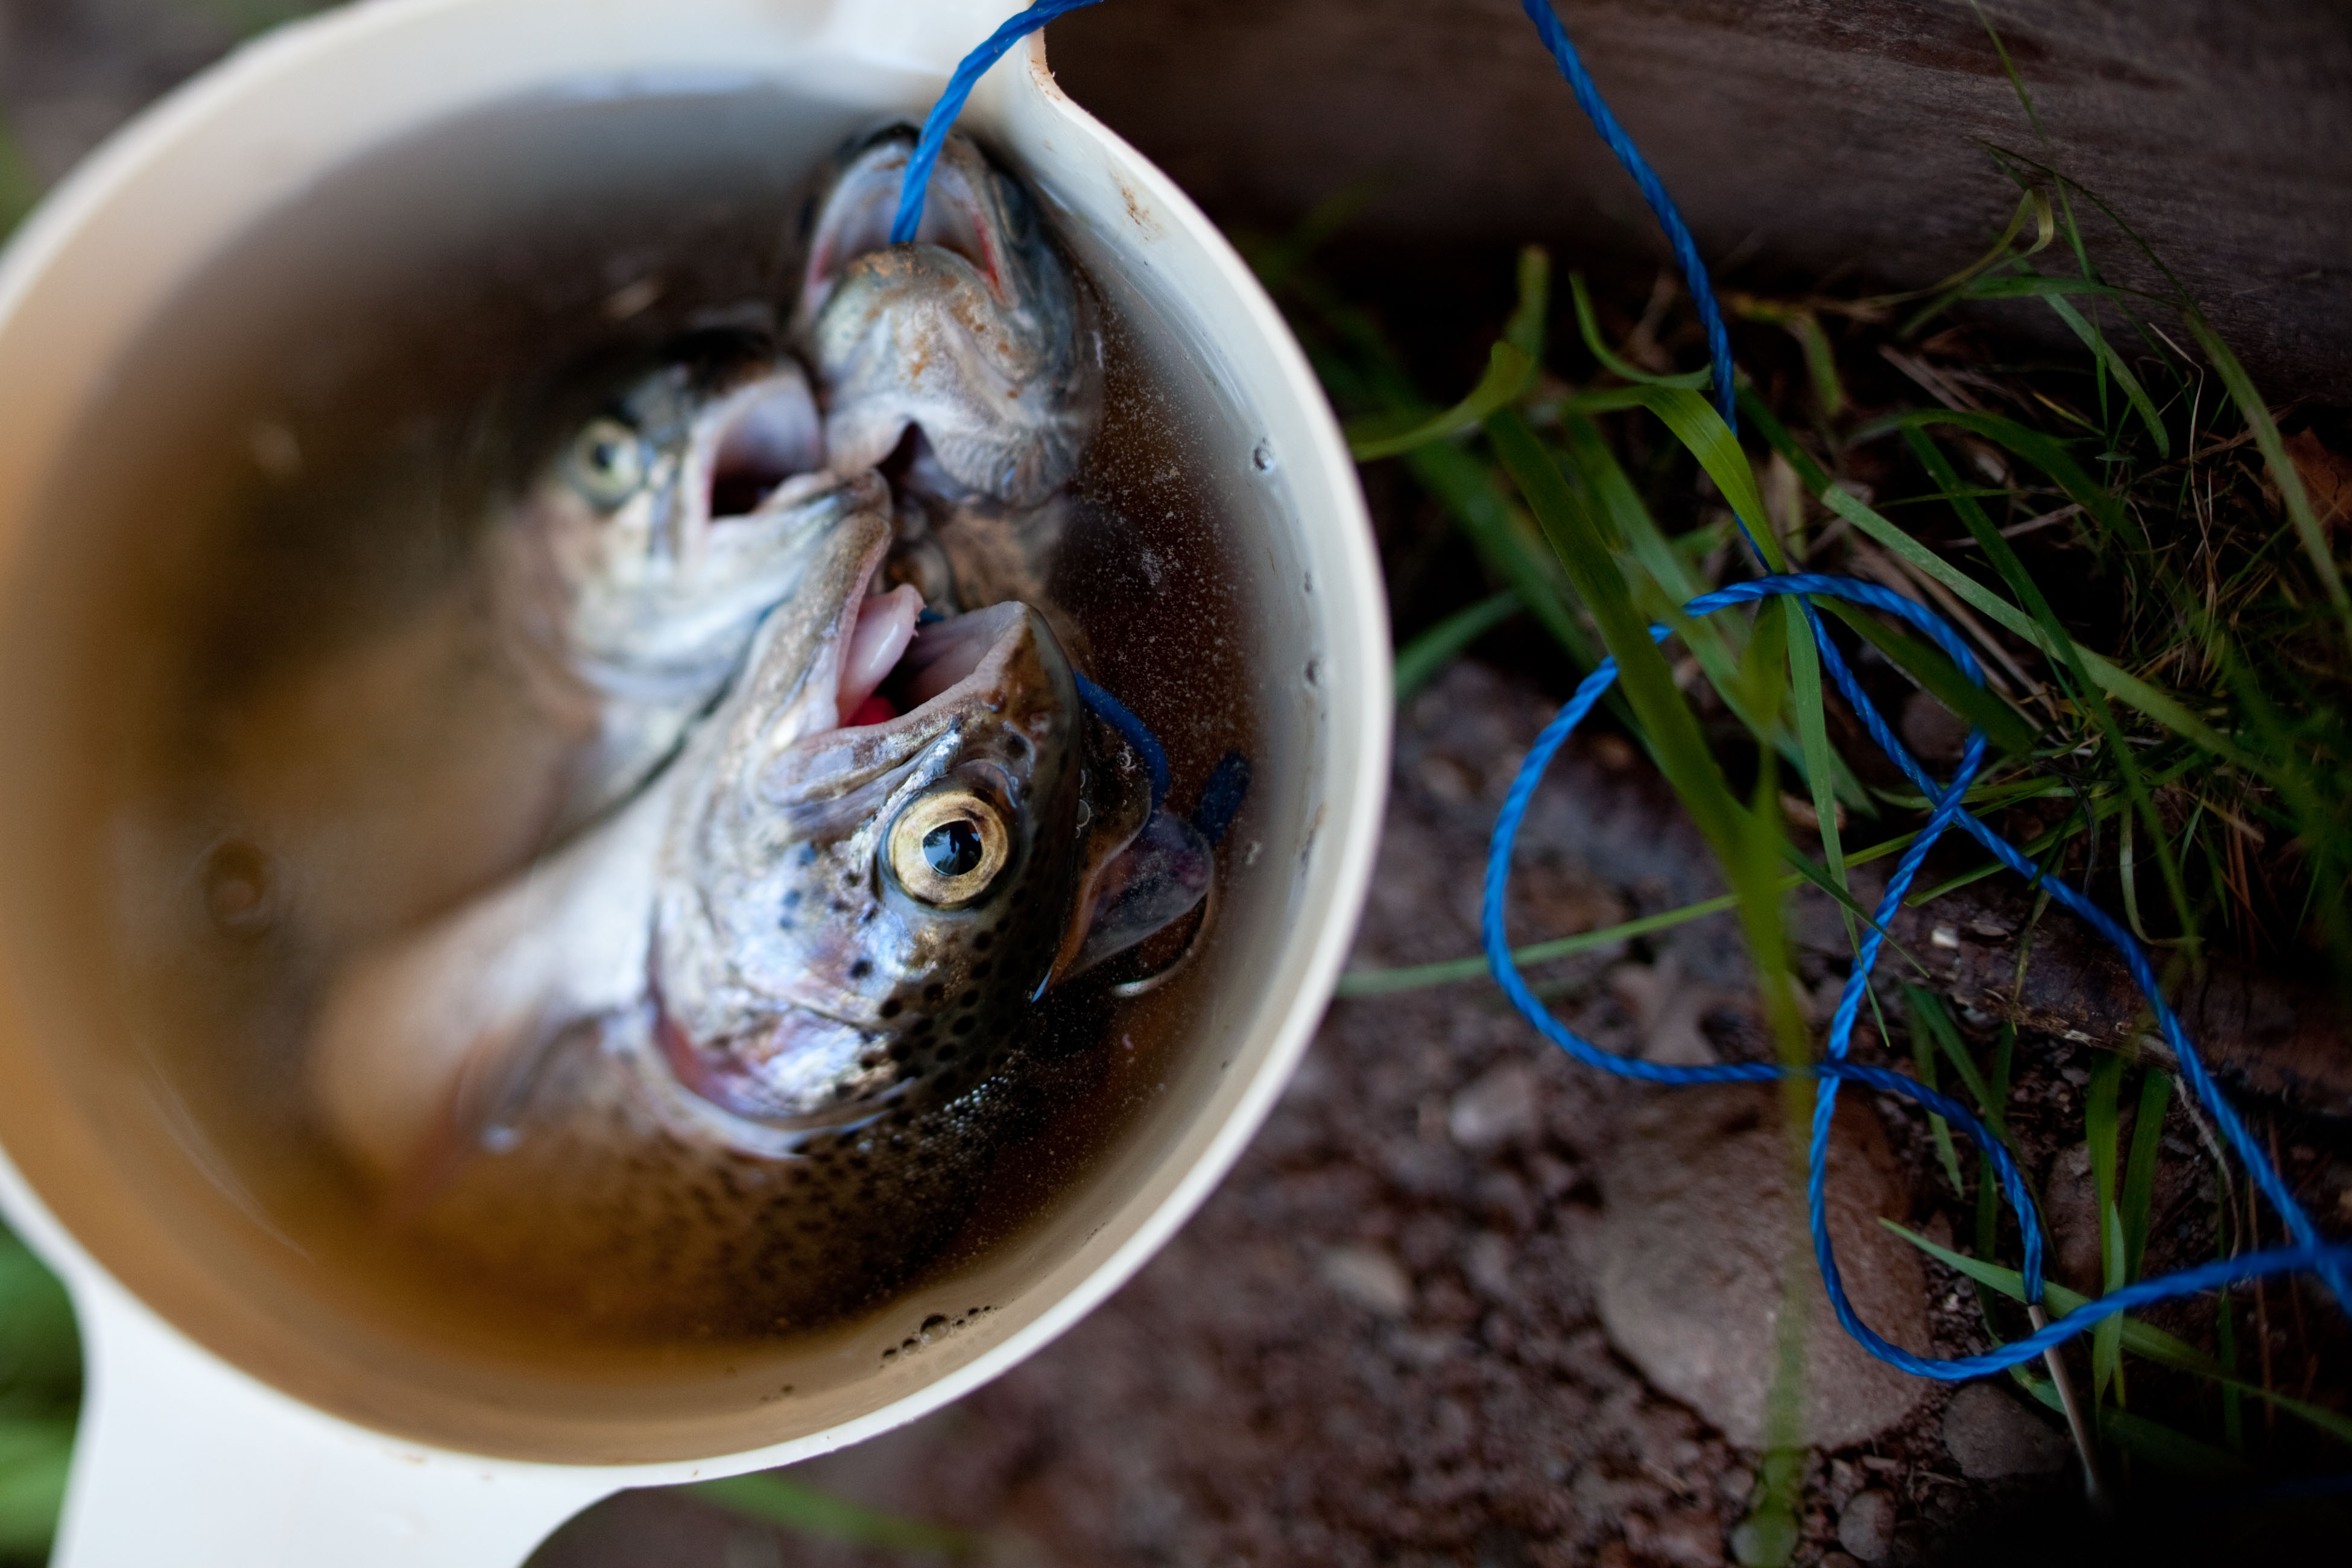 Despite The Evidence That Fish Can Suffer, Animal Welfare Legislations And  Other Legal Protections Often Exclude Them. (wonderlandstock / Alamy)